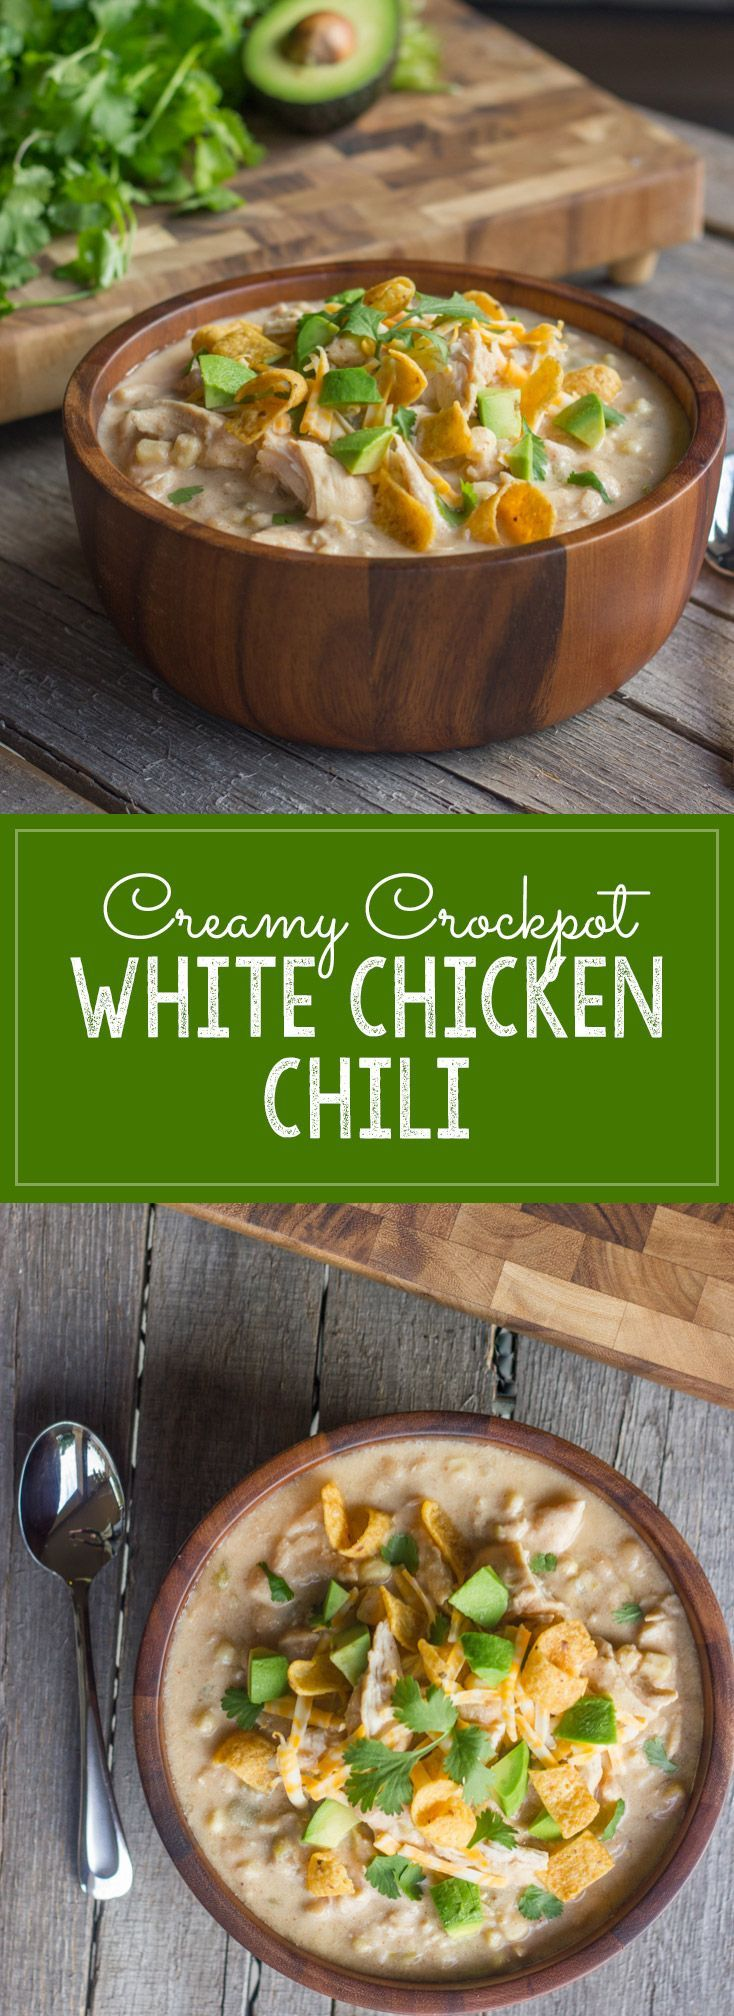 Creamy Crockpot White Chicken Chili - A family favorite made healthier, and so easy too!